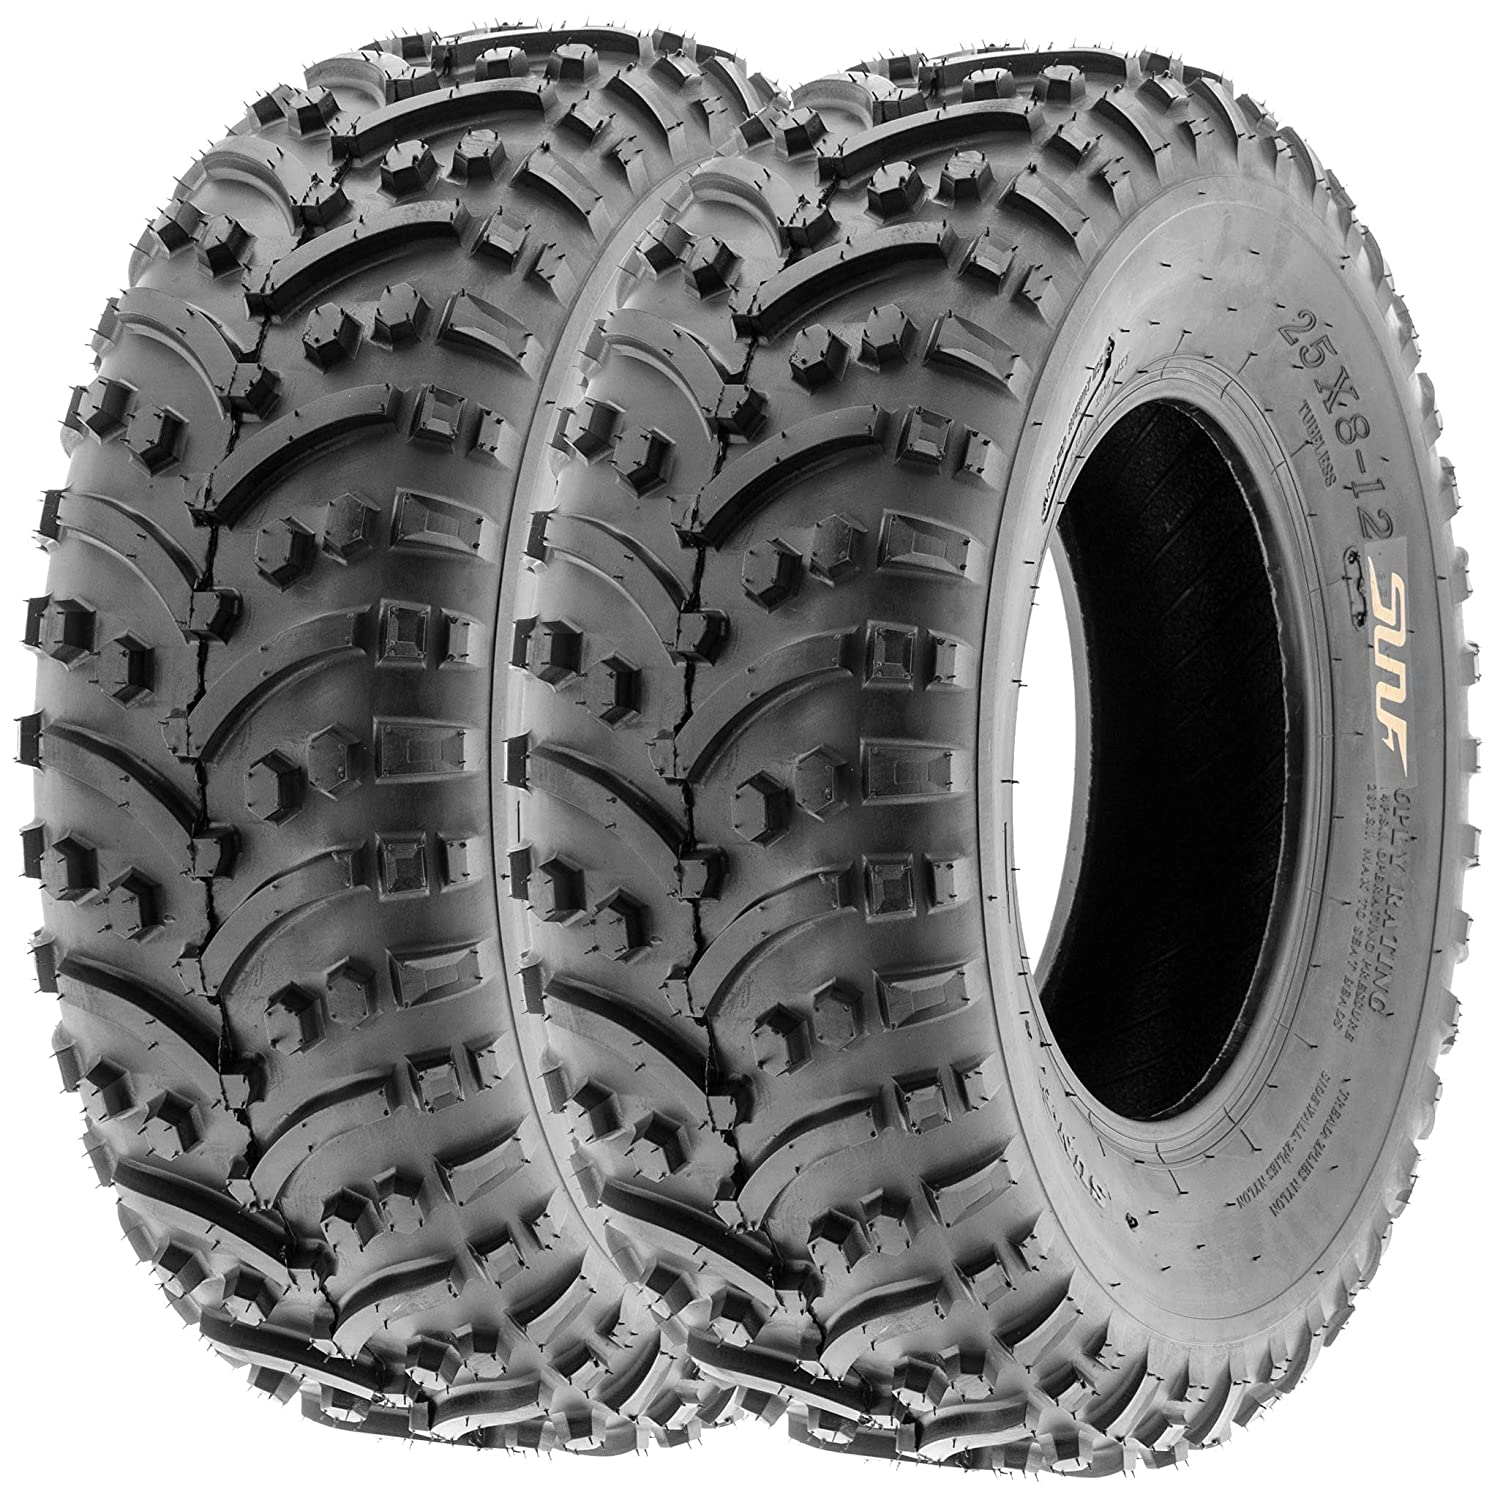 SunF 22x11-8 22x11x8 ATV UTV A/T All Trail Race Replacement Tubeless Tires A032, [Set of 2] LCF1|A032|221108||x2